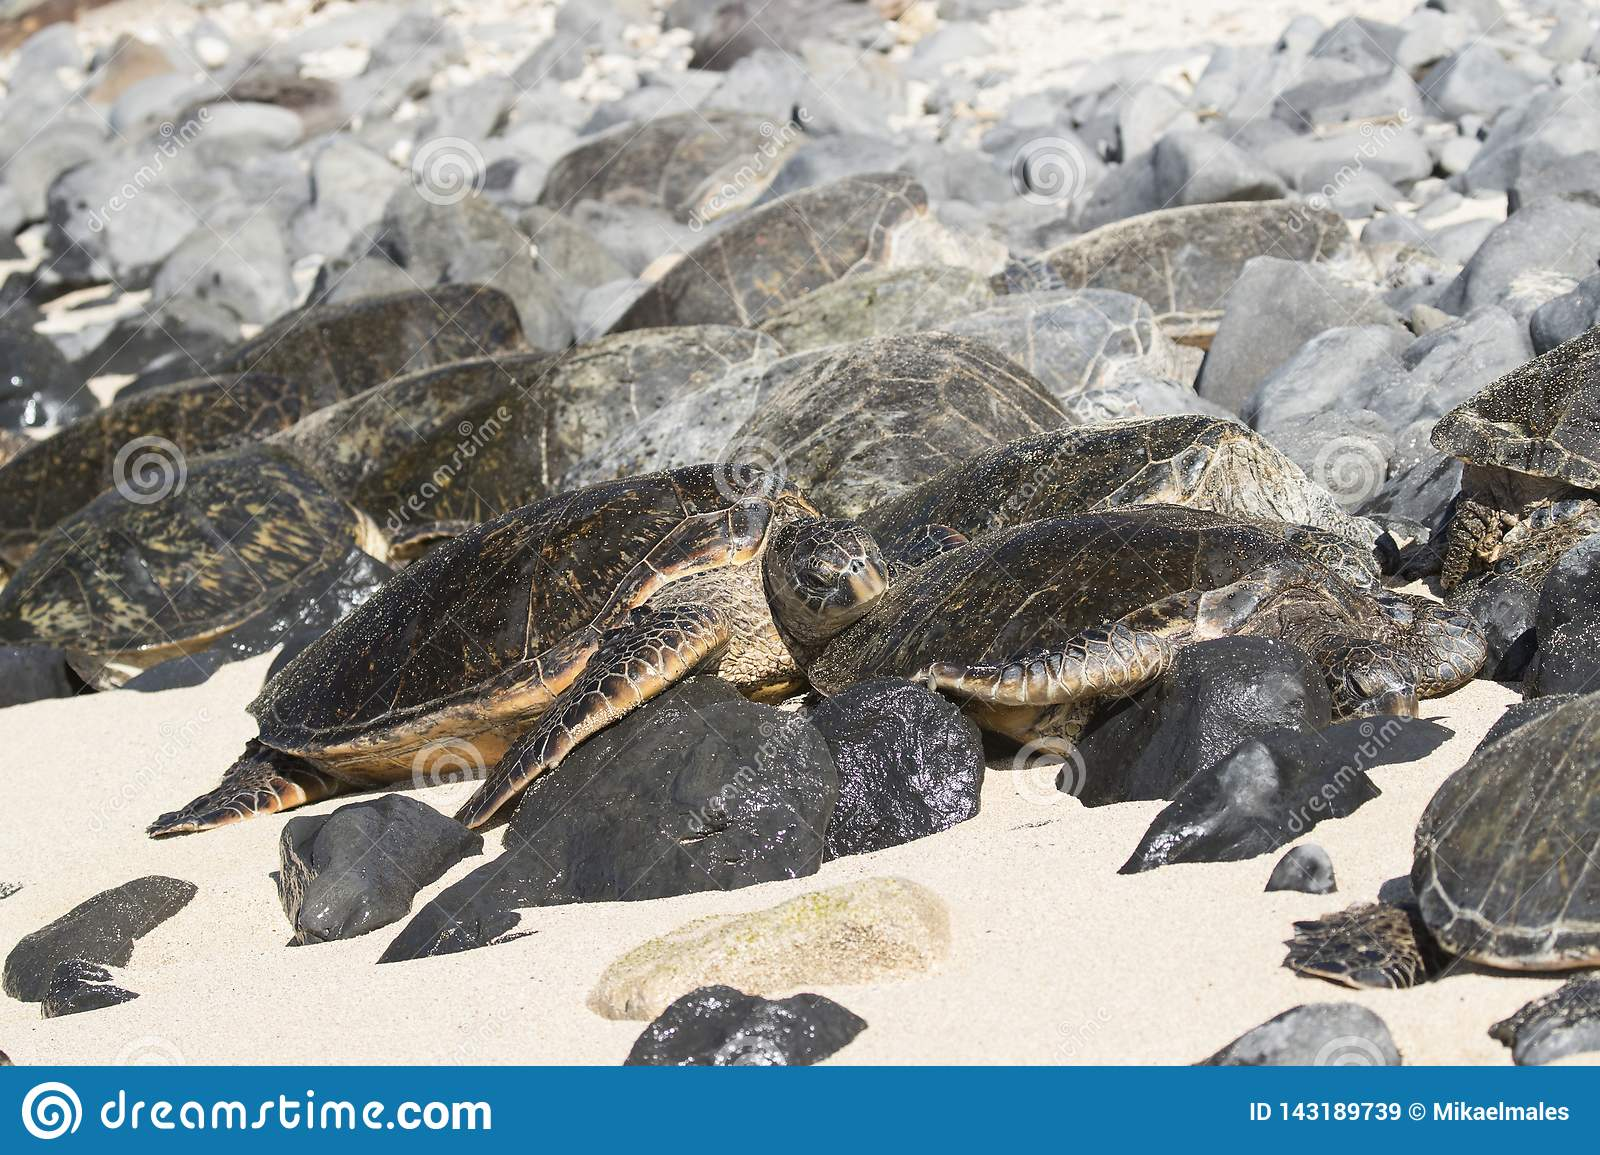 Group of green sea turtles resting on beach in Maui Hawaii